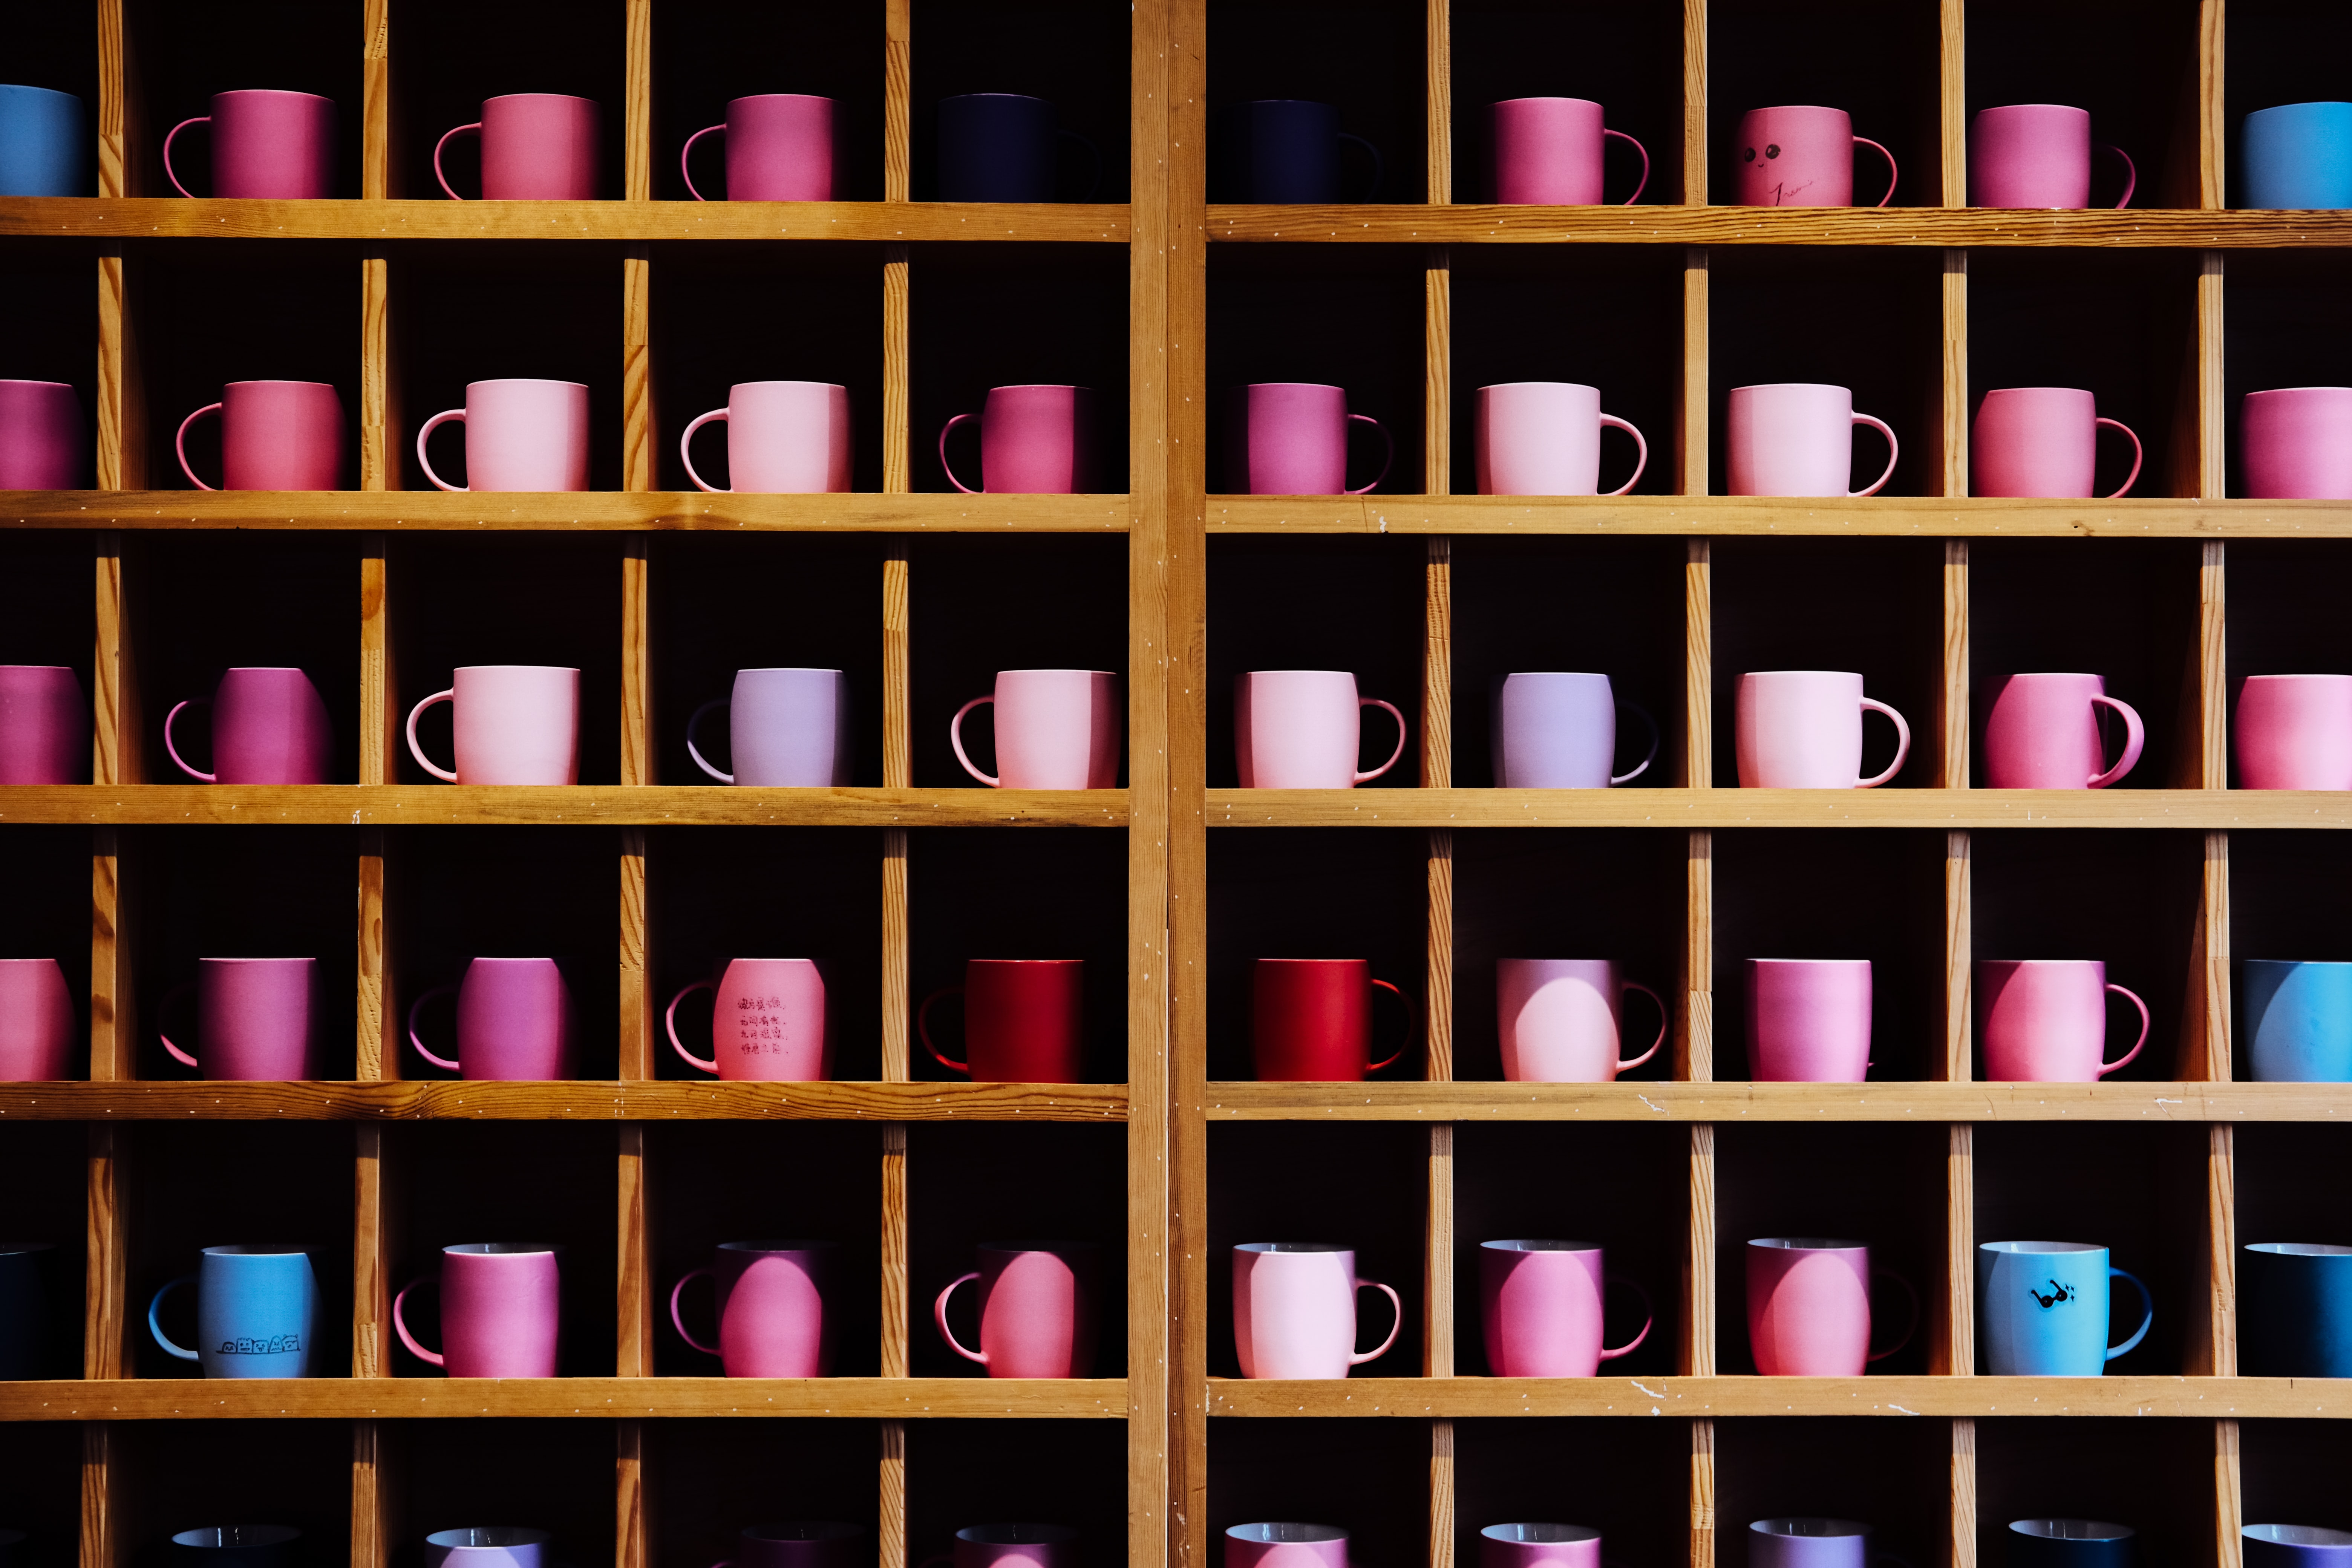 150983 download wallpaper Cups, Tablewares, Miscellanea, Miscellaneous, Wood, Wooden, Multicolored, Motley, Shelves screensavers and pictures for free